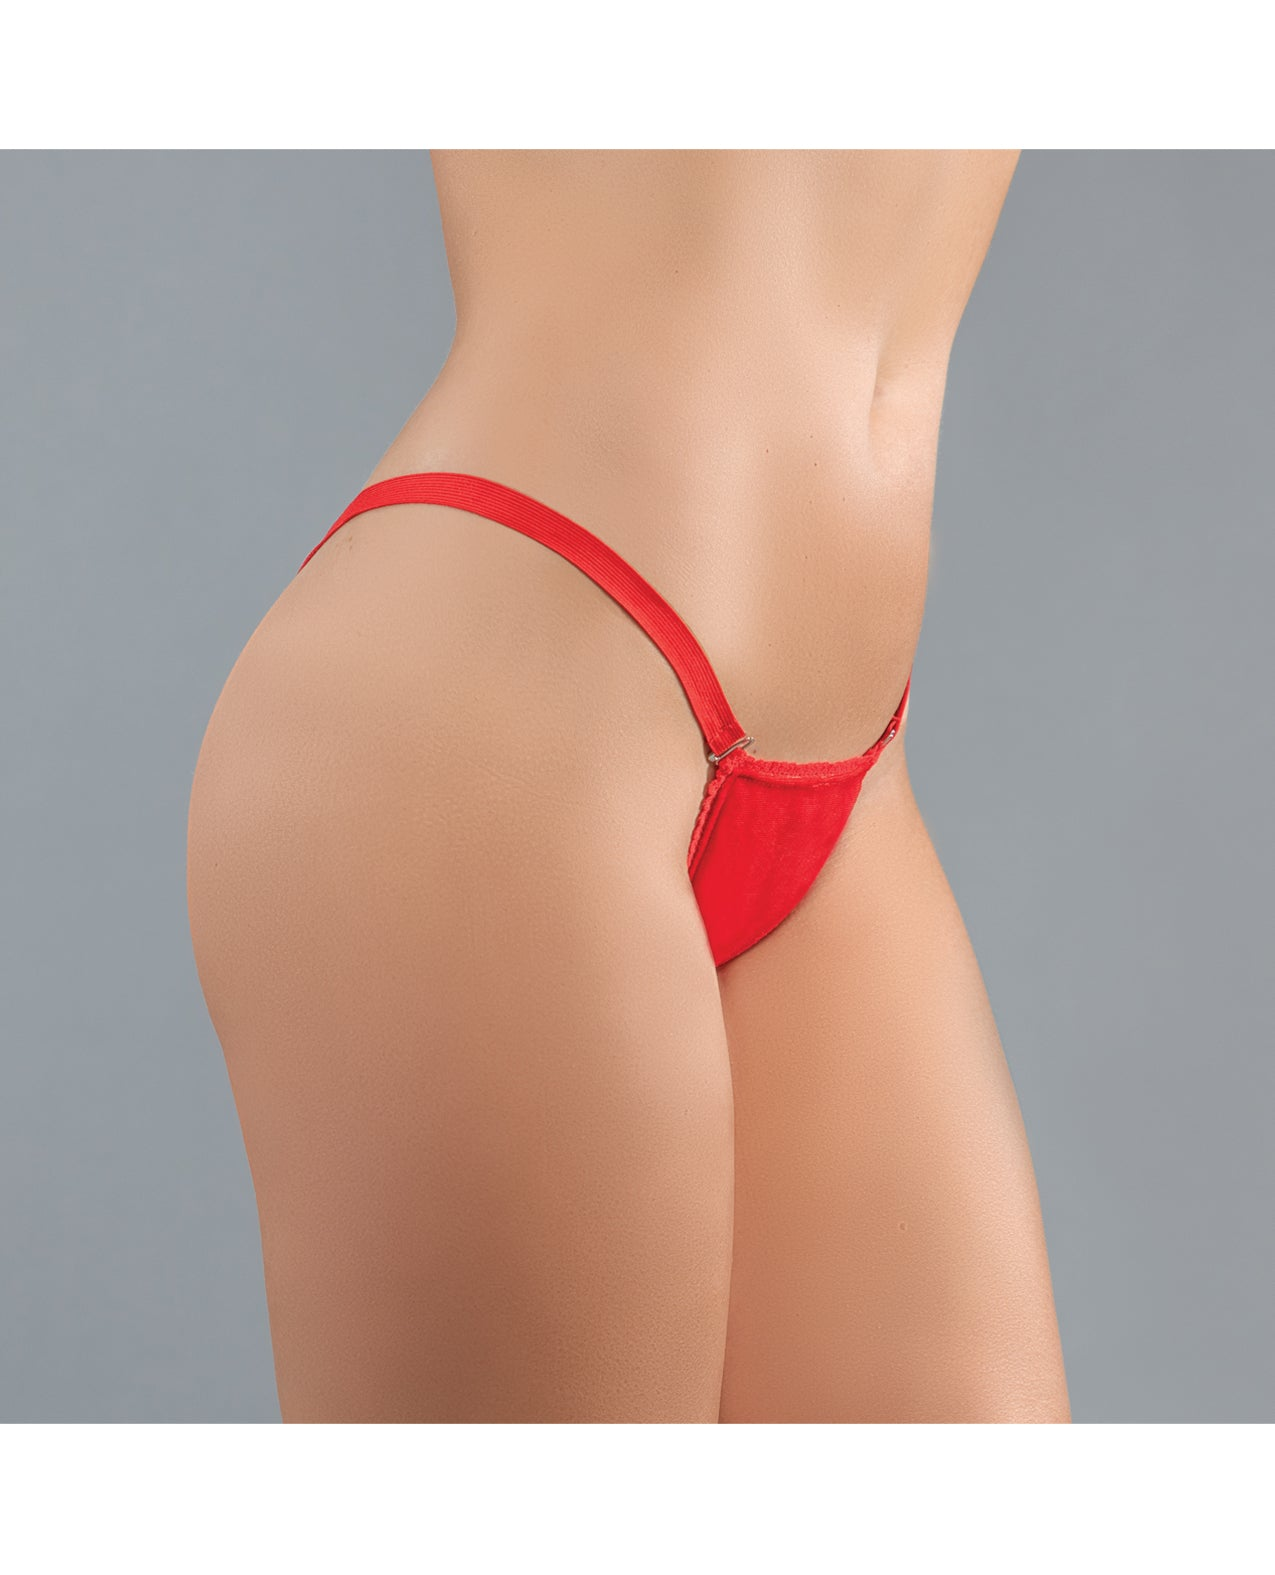 Adore Between the Cheats Wetlook Panty Red O/S